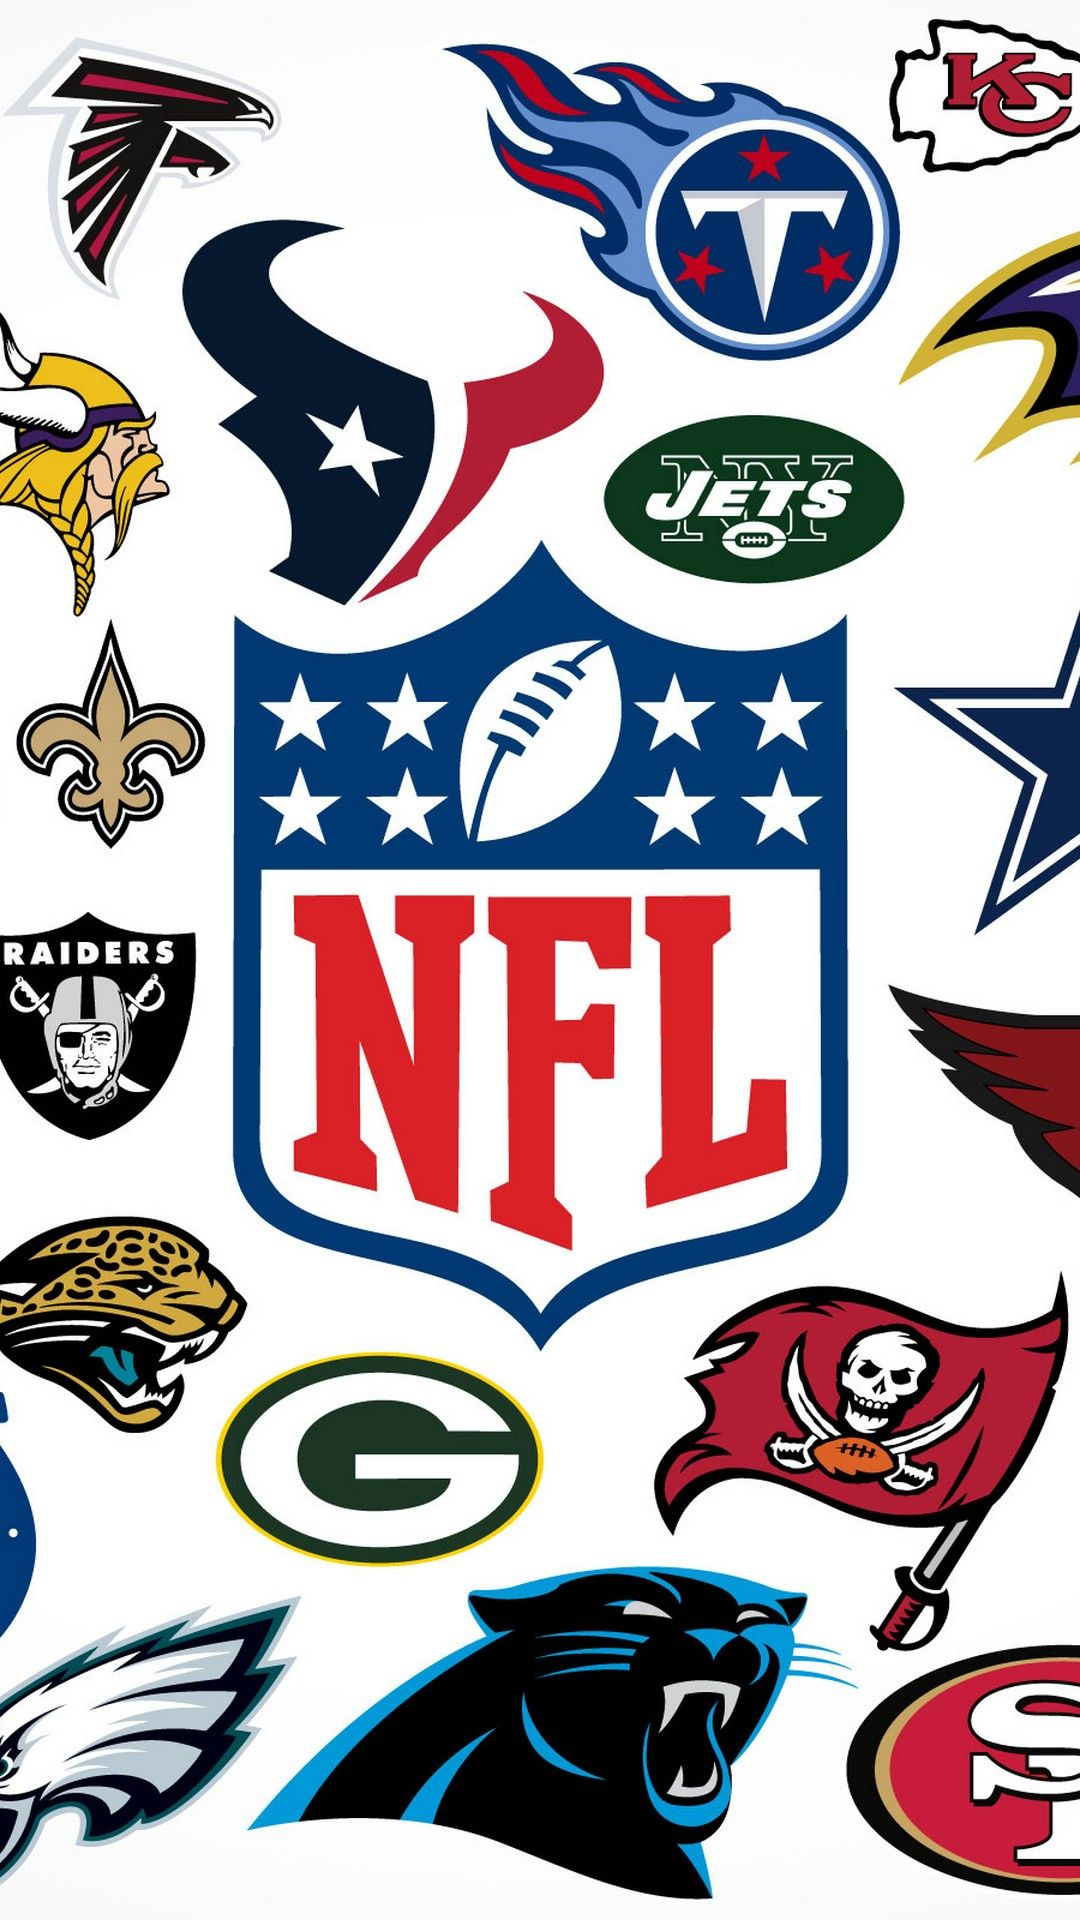 Nfl Iphone X Wallpaper 2020 Nfl Football Wallpapers Football Wallpaper Nfl Football Wallpaper Nfl Football Art